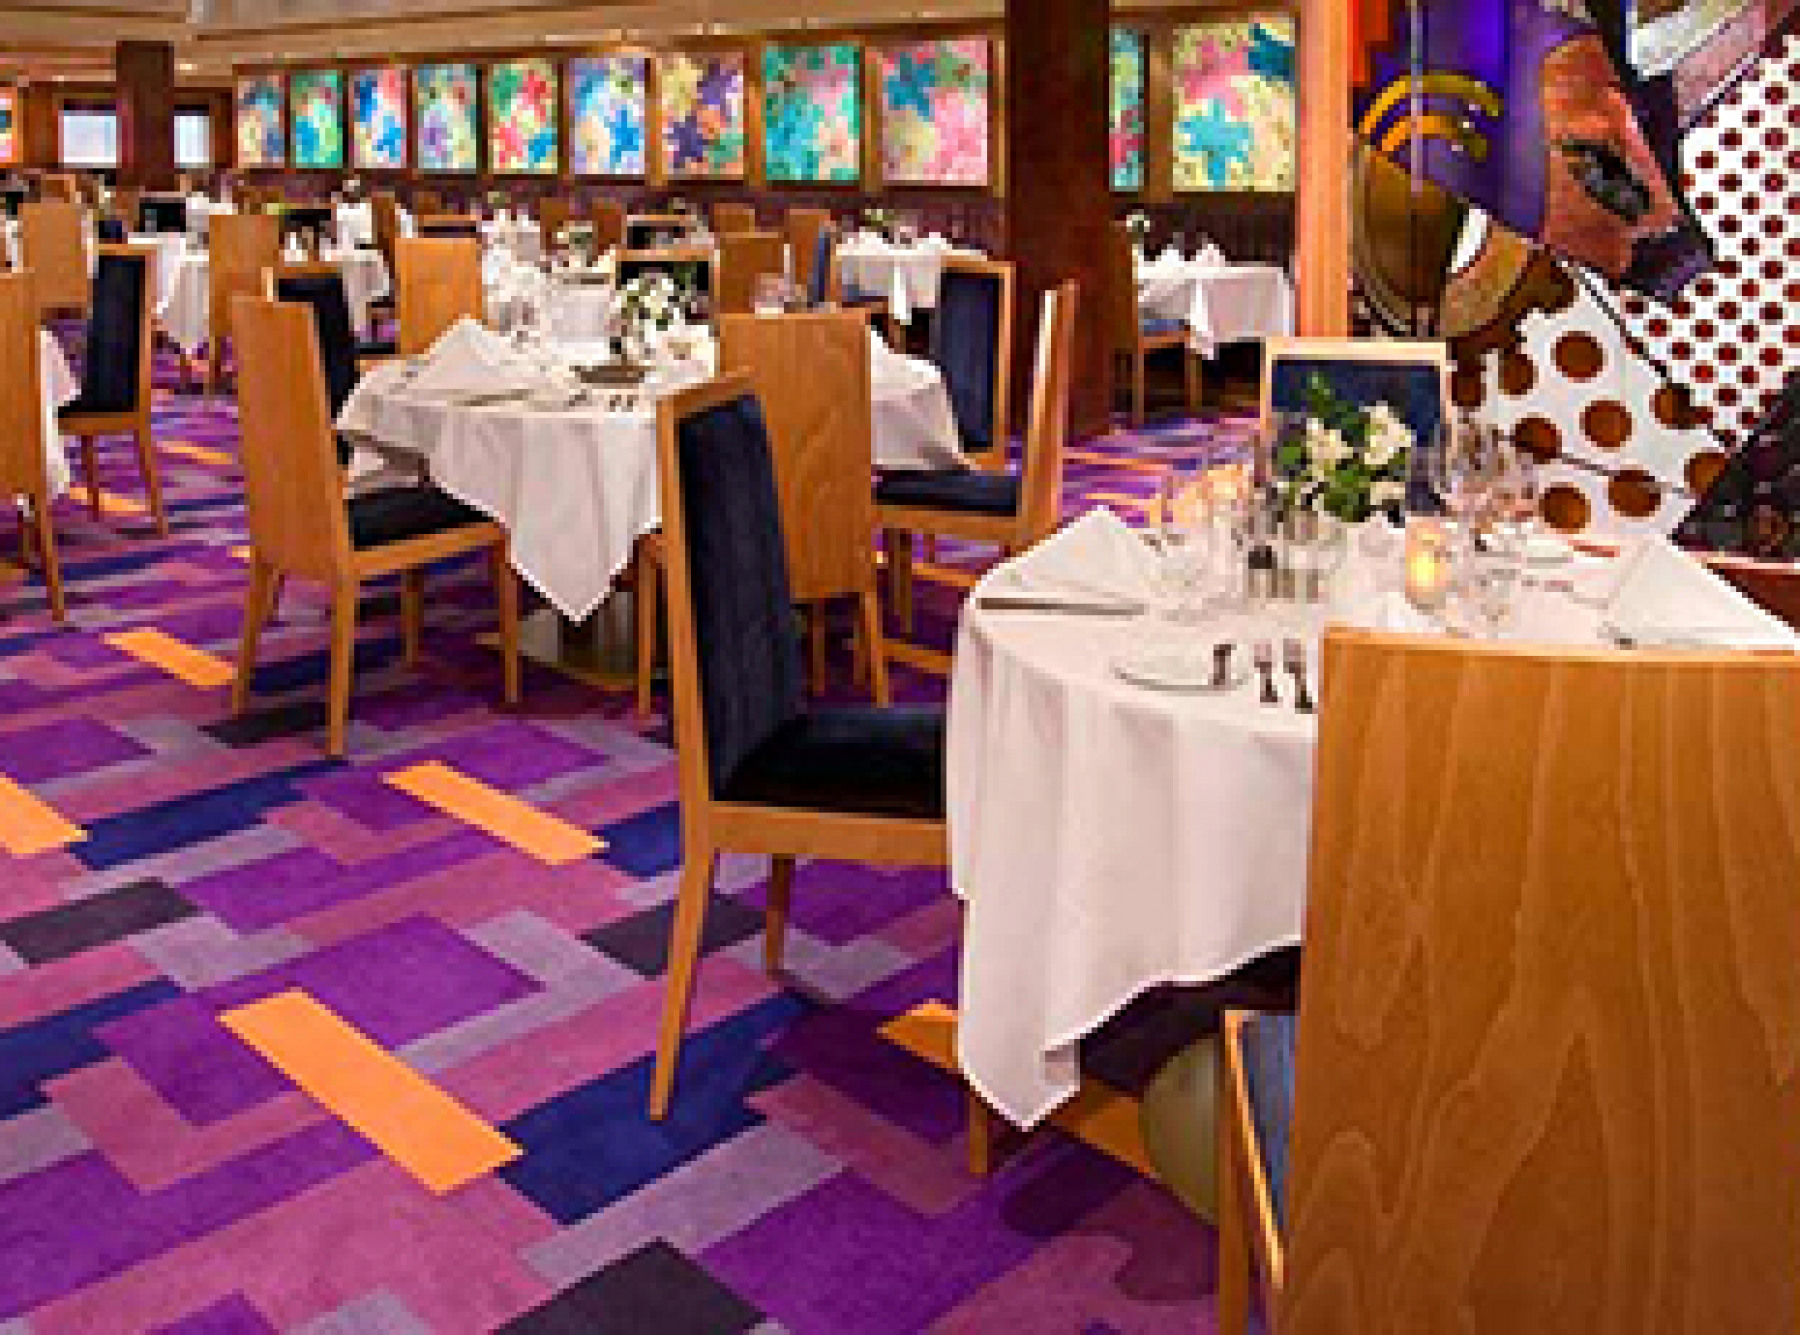 Norwegian Cruise Line Norwegian Jewel Interior Azura Main Dining Room.jpg